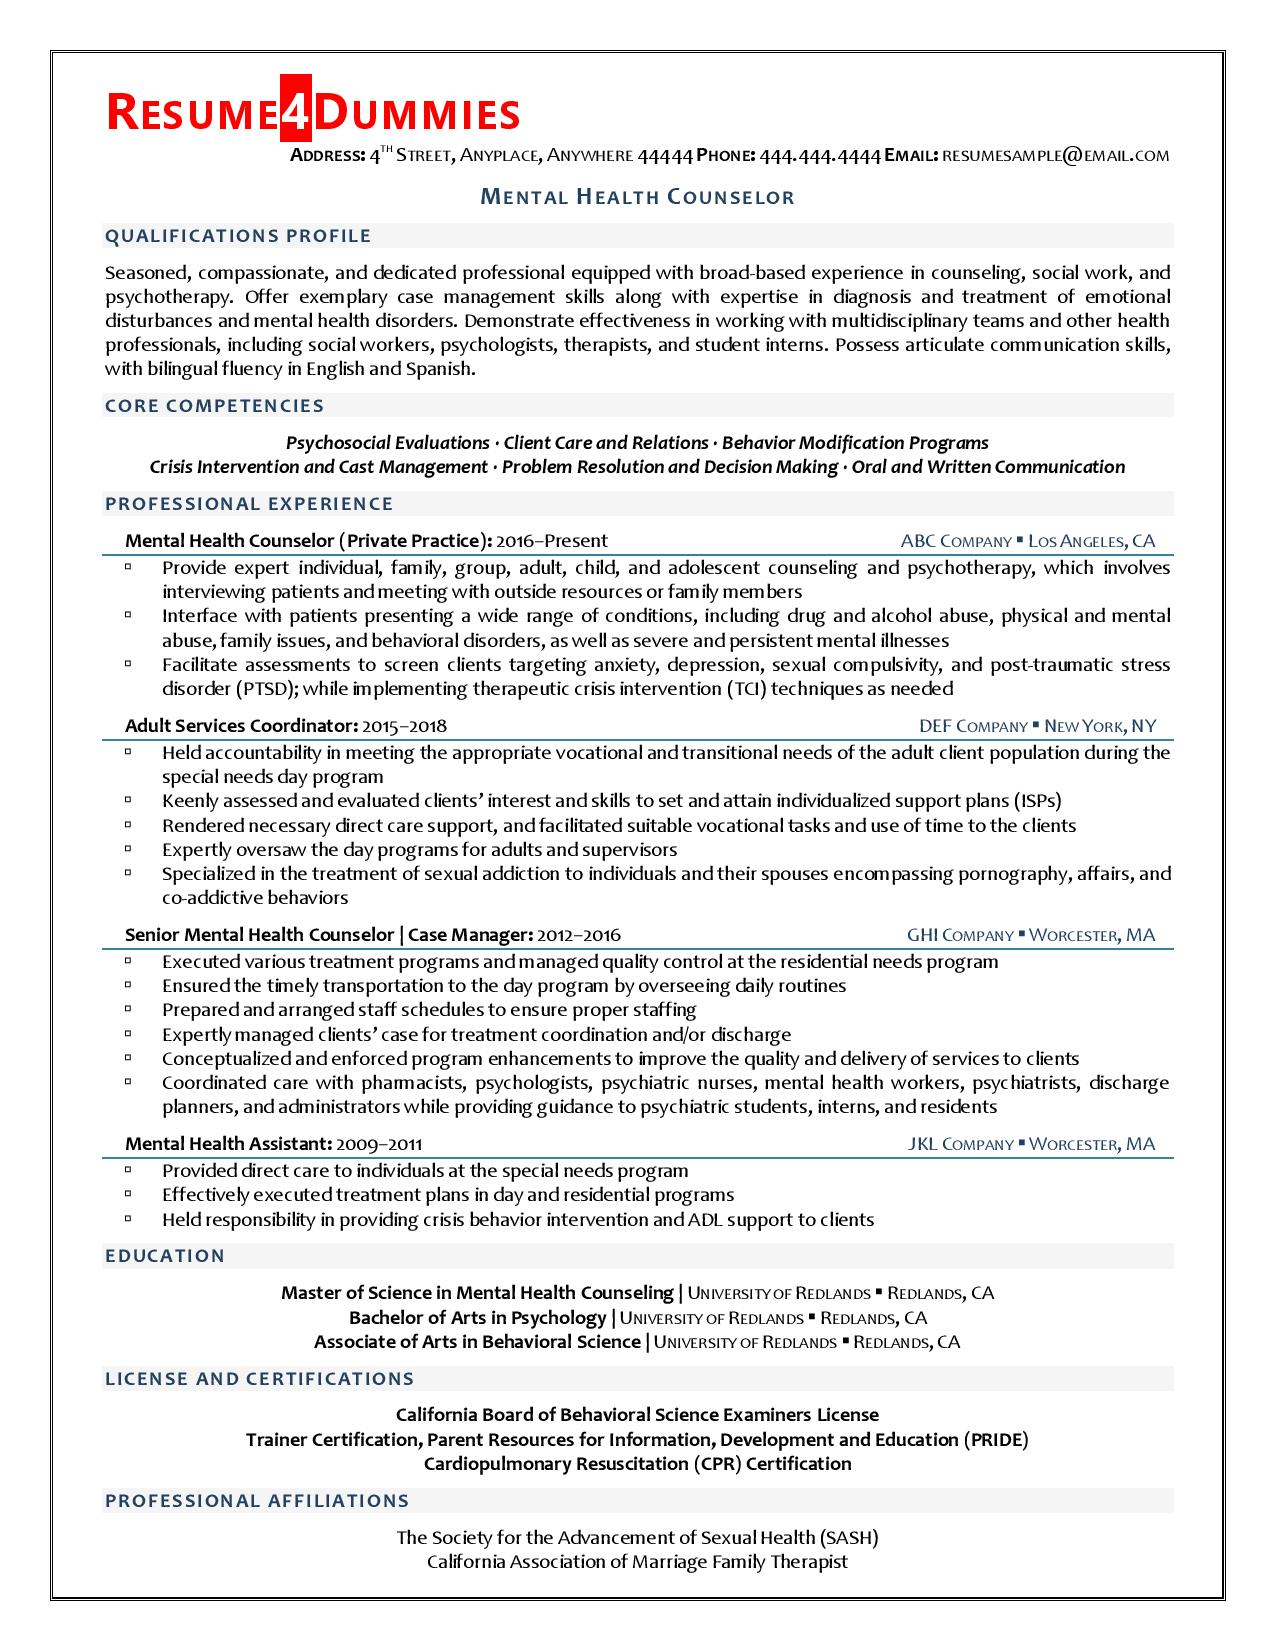 mental health counselor resume example resume4dummies substance abuse templates excel vba Resume Substance Abuse Counselor Resume Templates